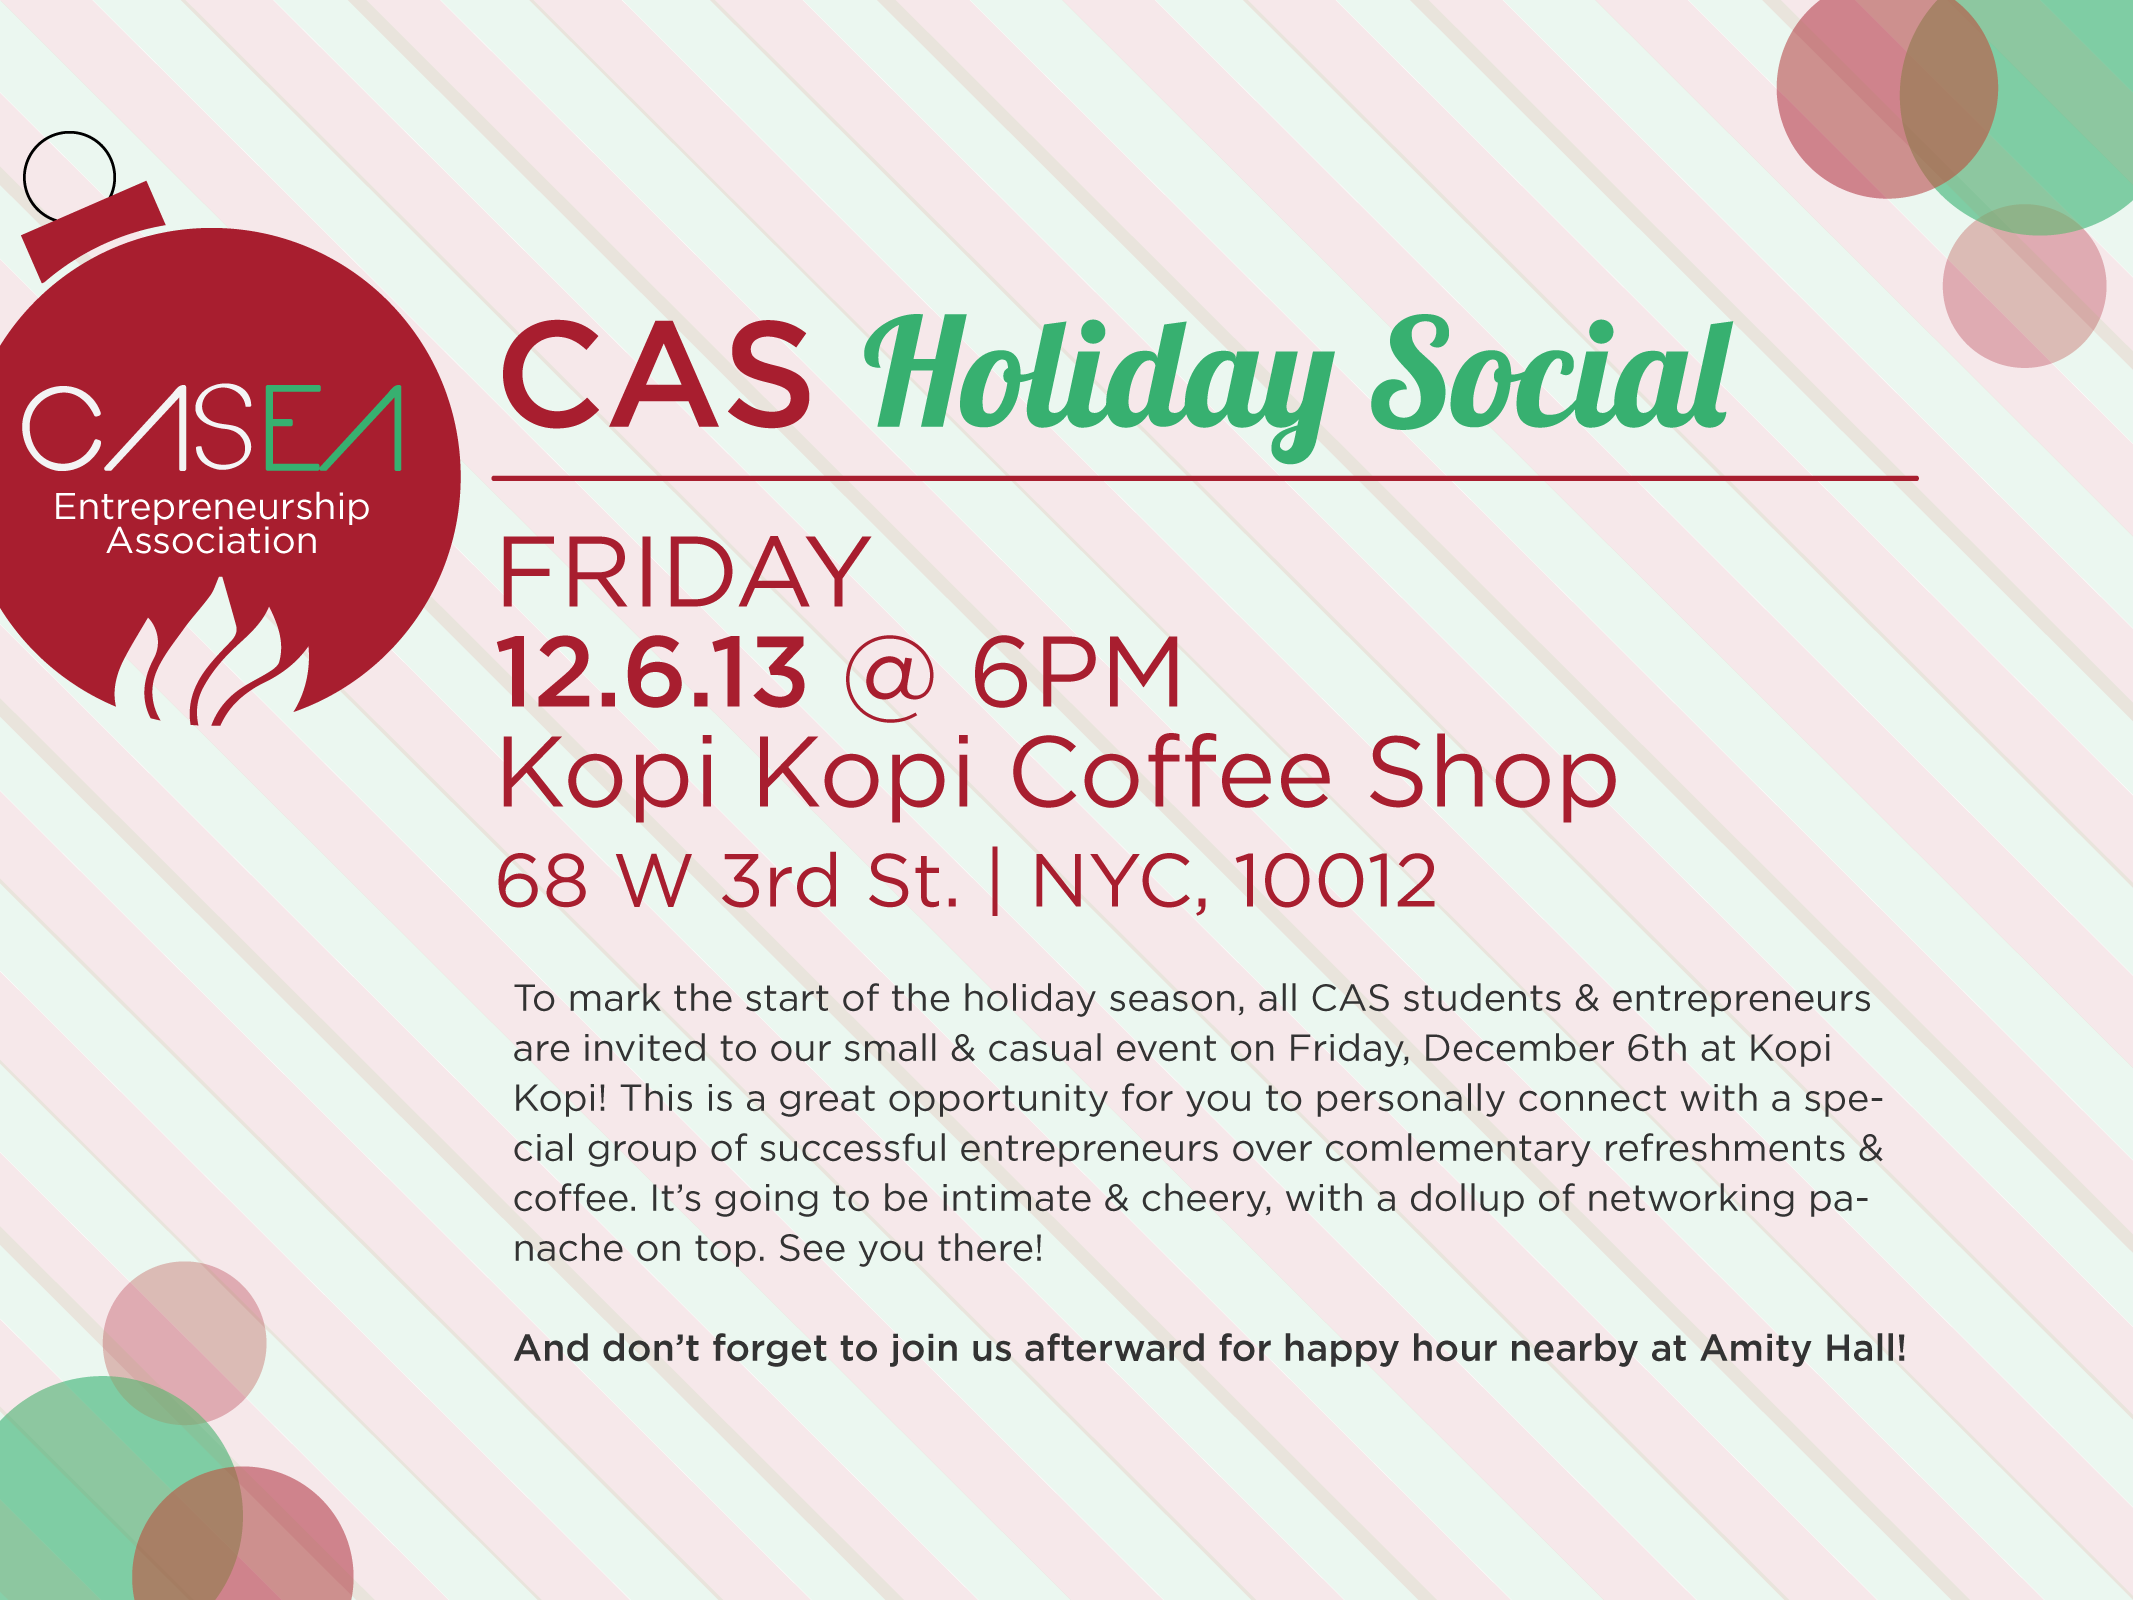 To mark the start of the holiday season, all CAS students & entrepreneurs are invited to our small & casual event on Friday, December 6th at Kopi Kopi! This is a great opportunity for you to personally connect with a special group of successful entrepreneurs over complimentary refreshments & coffee. It's going to be intimate & cheery, with a dollup of networking panache on top. See you there! :)  BE SURE TO JOIN FOR HAPPY HOUR AFTERWARD @ AMITY HALL! (21+)